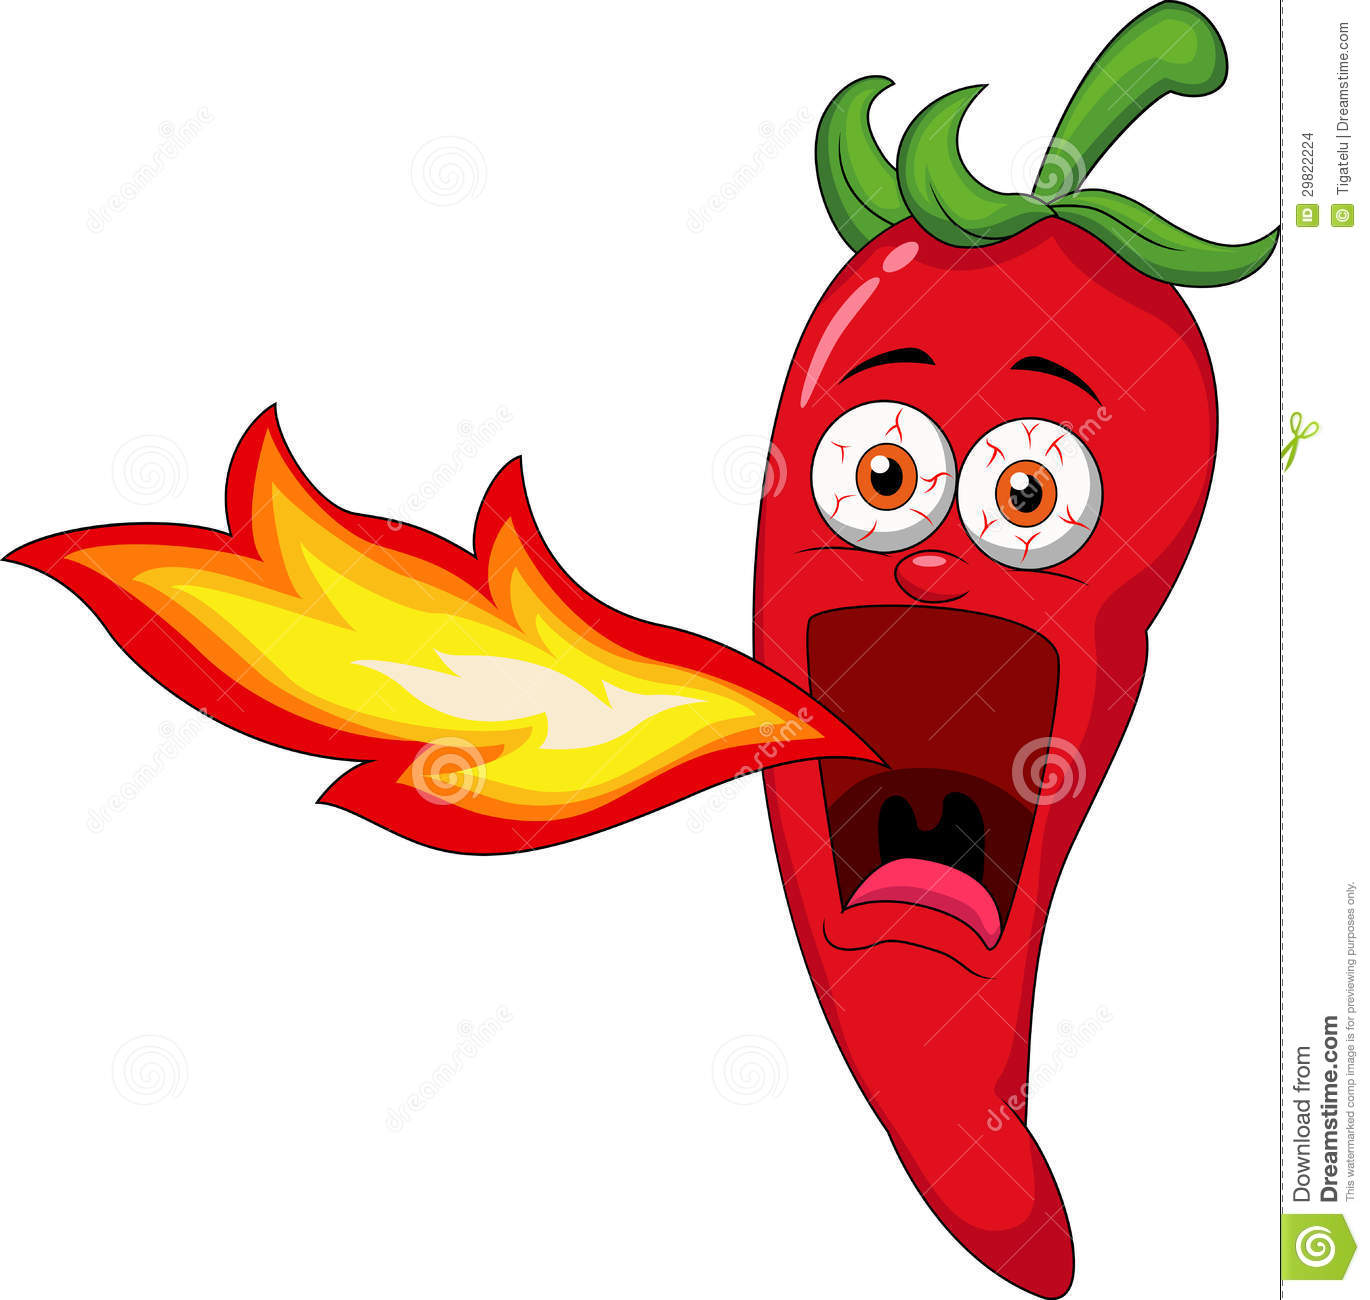 Chili Cartoon Character Breathing Fire Stock Images - Image: 29822224